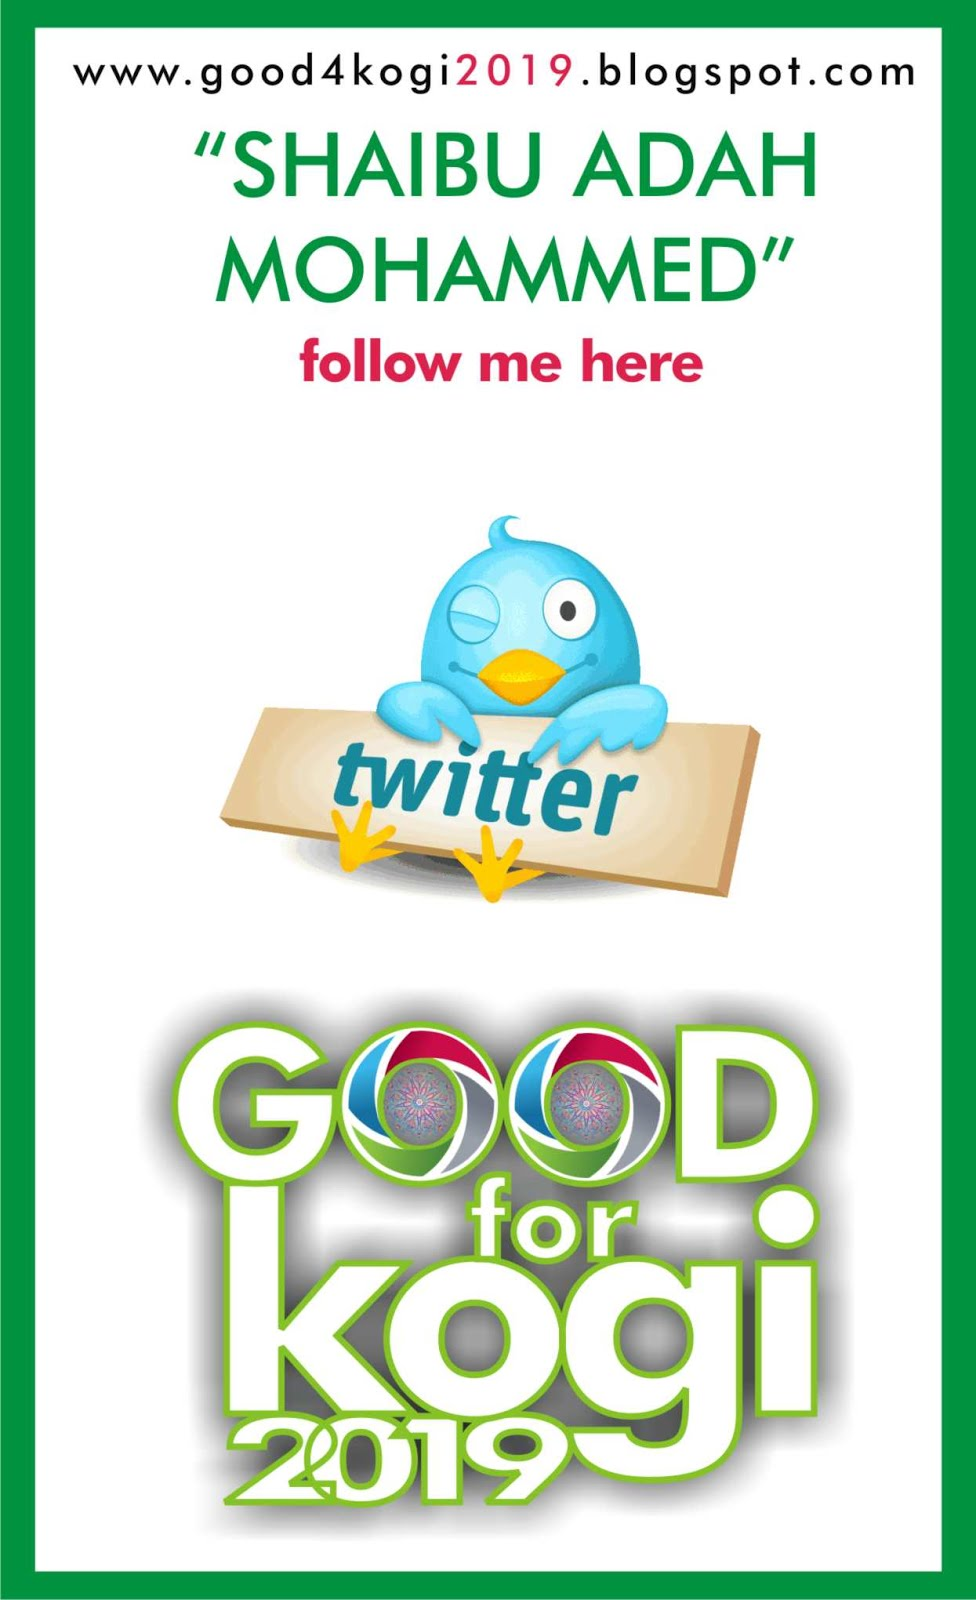 SEE OUR TWITTS HERE: JOIN US HERE